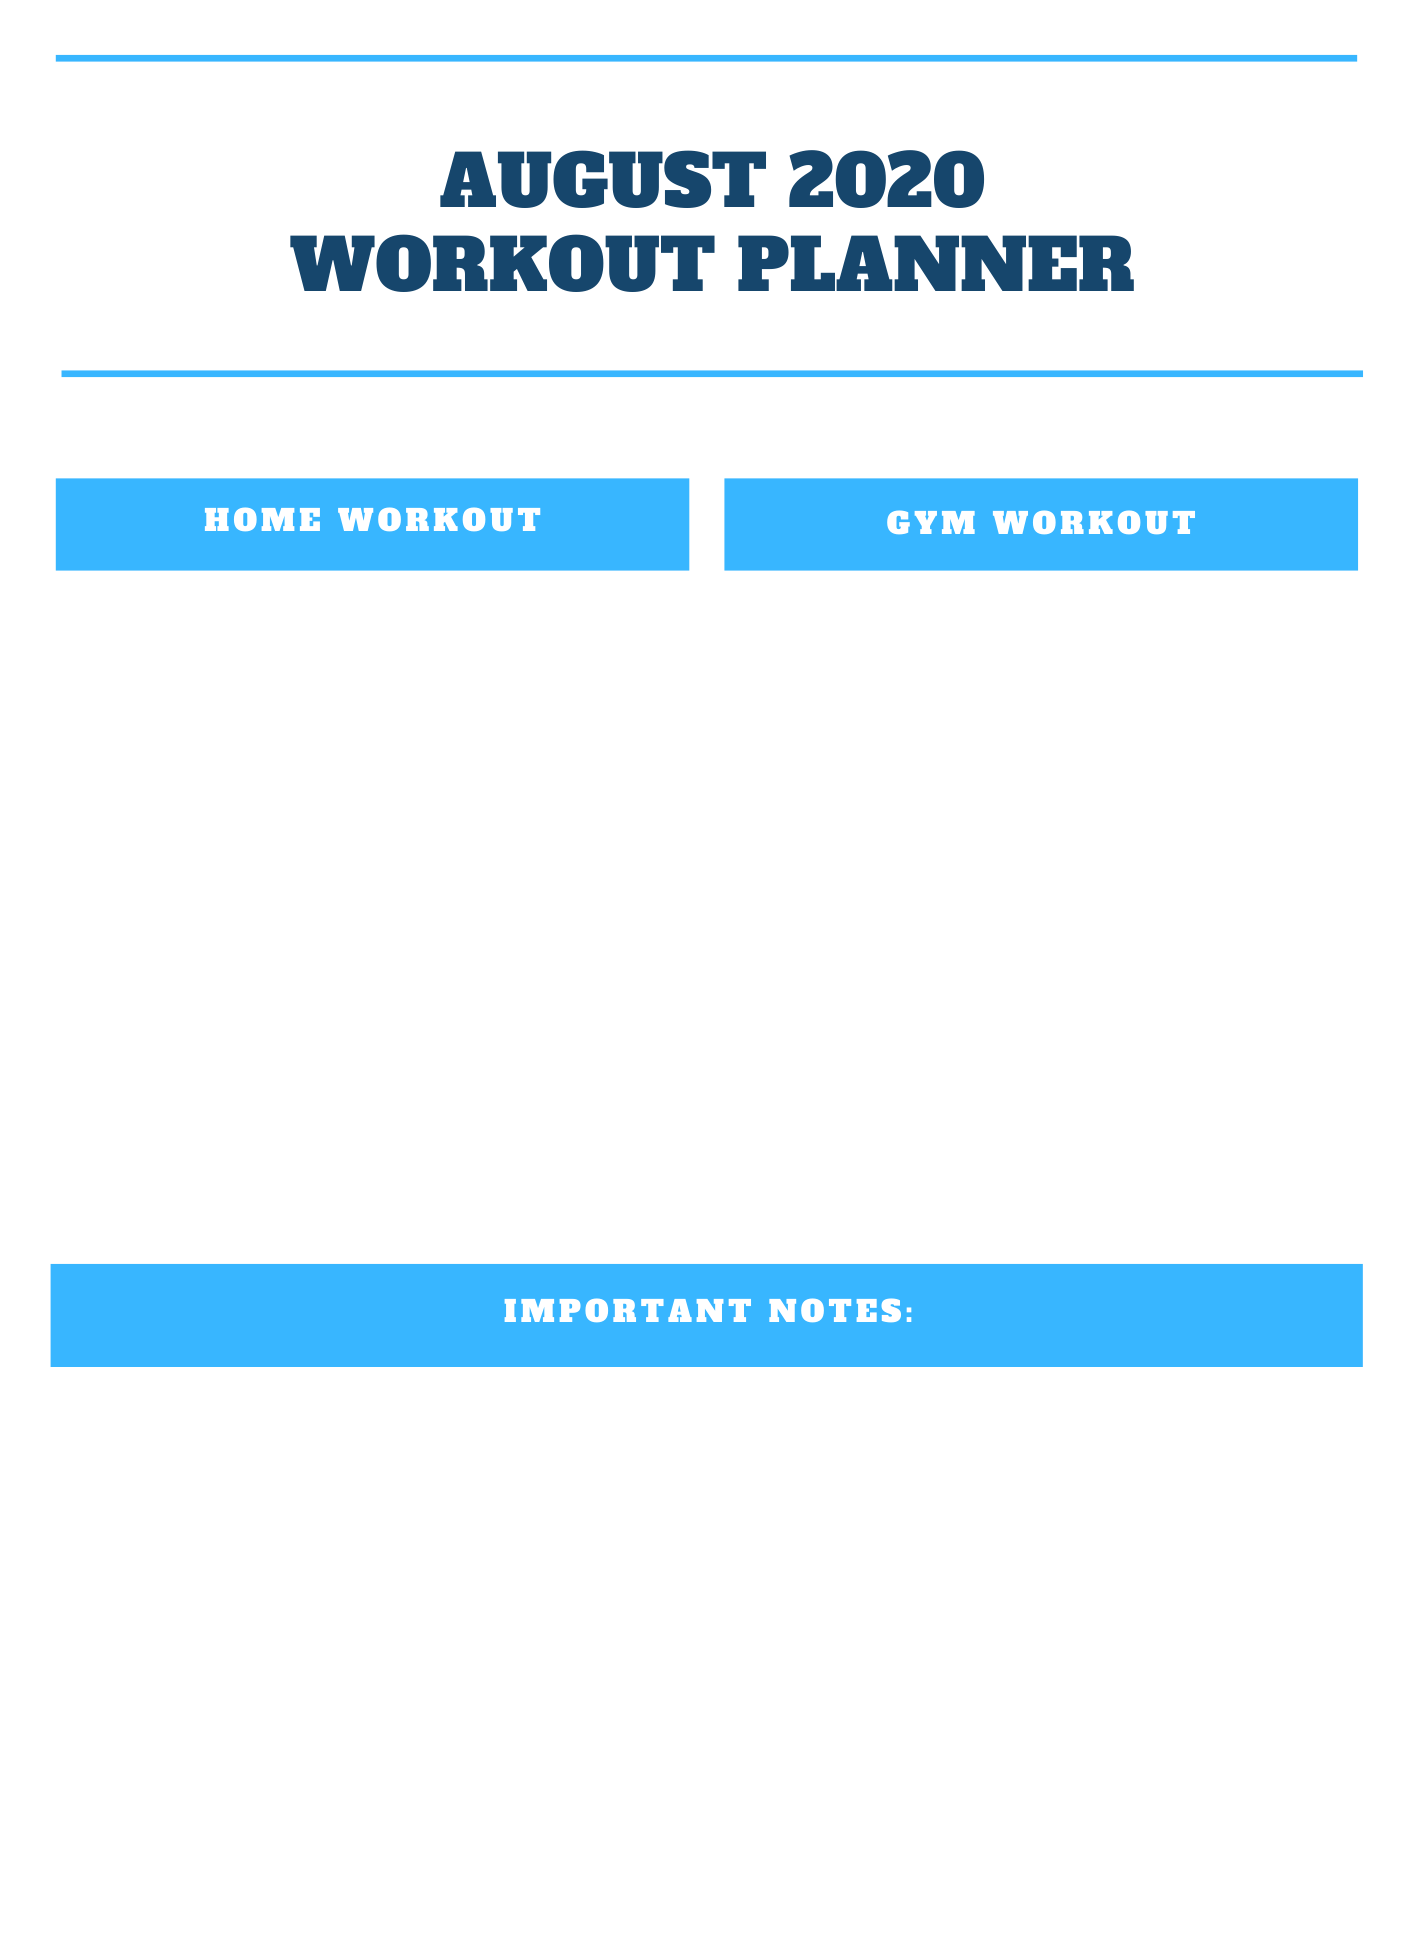 August 2020 Workout Planner